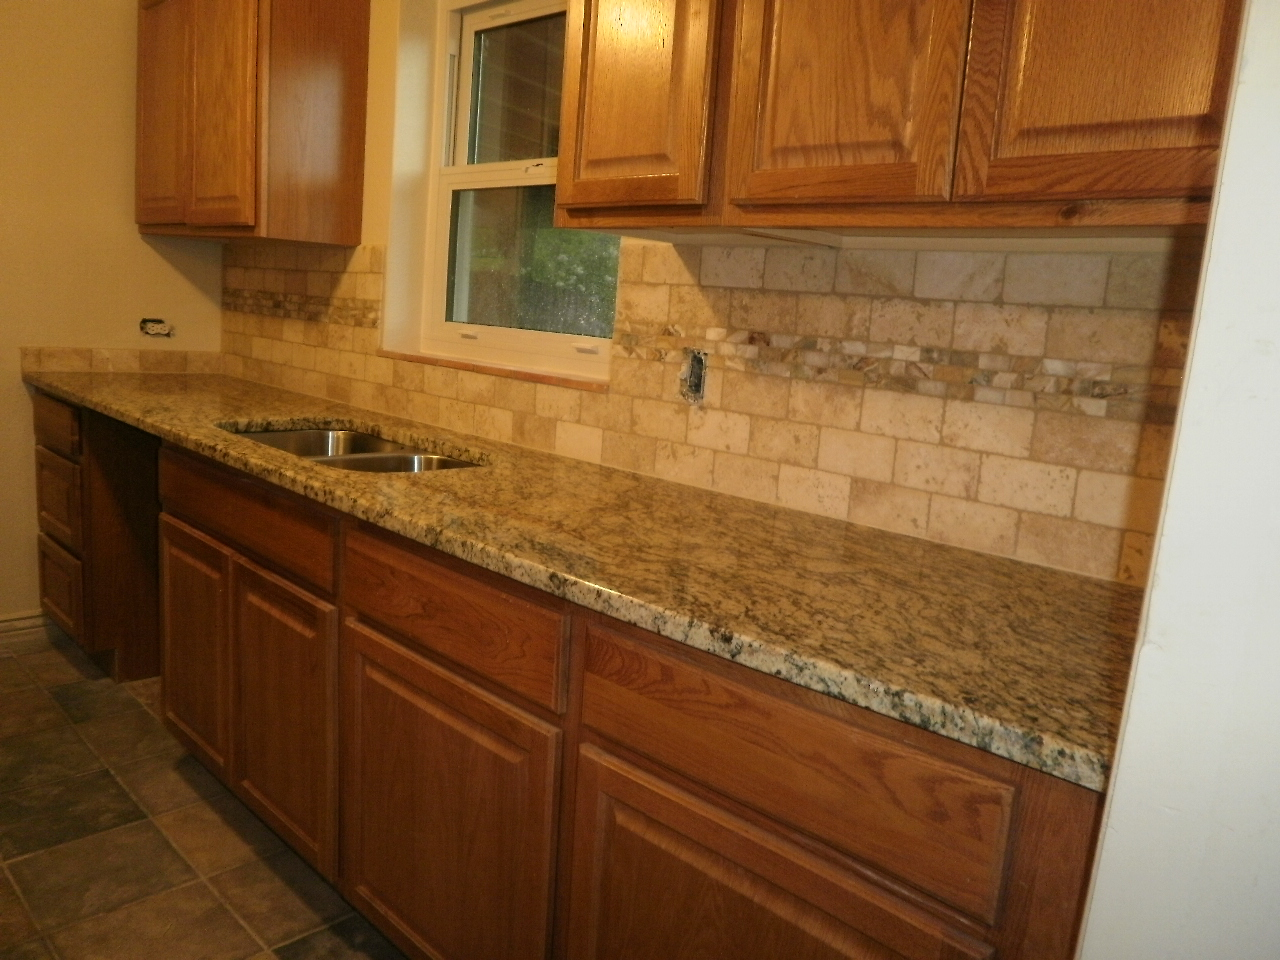 Integrity installations a division of front for Granite countertop design ideas